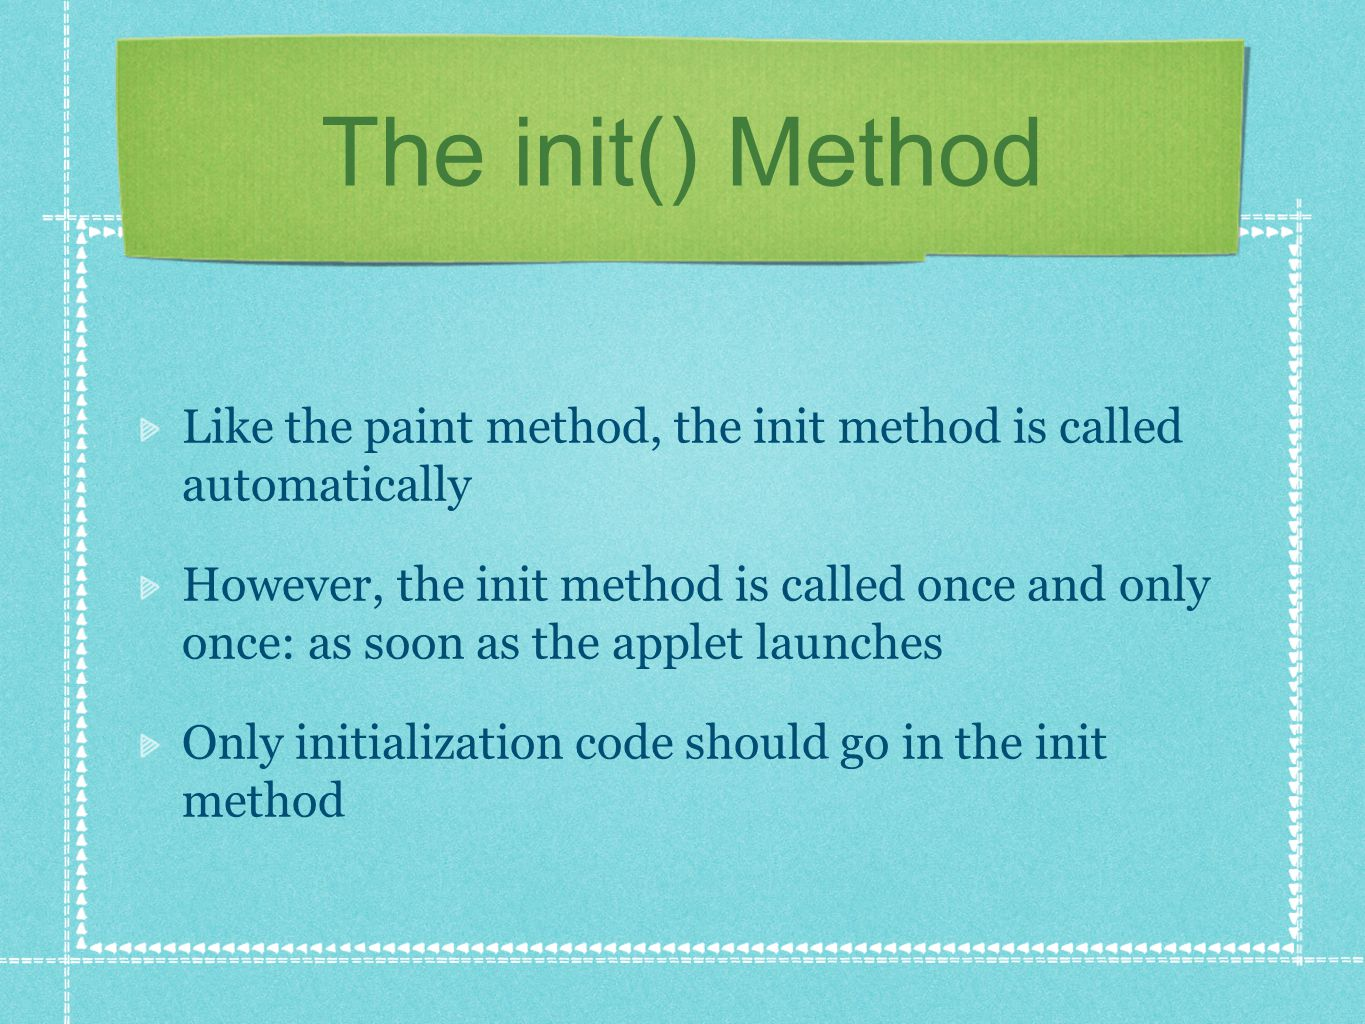 The init() Method Like the paint method, the init method is called automatically However, the init method is called once and only once: as soon as the applet launches Only initialization code should go in the init method